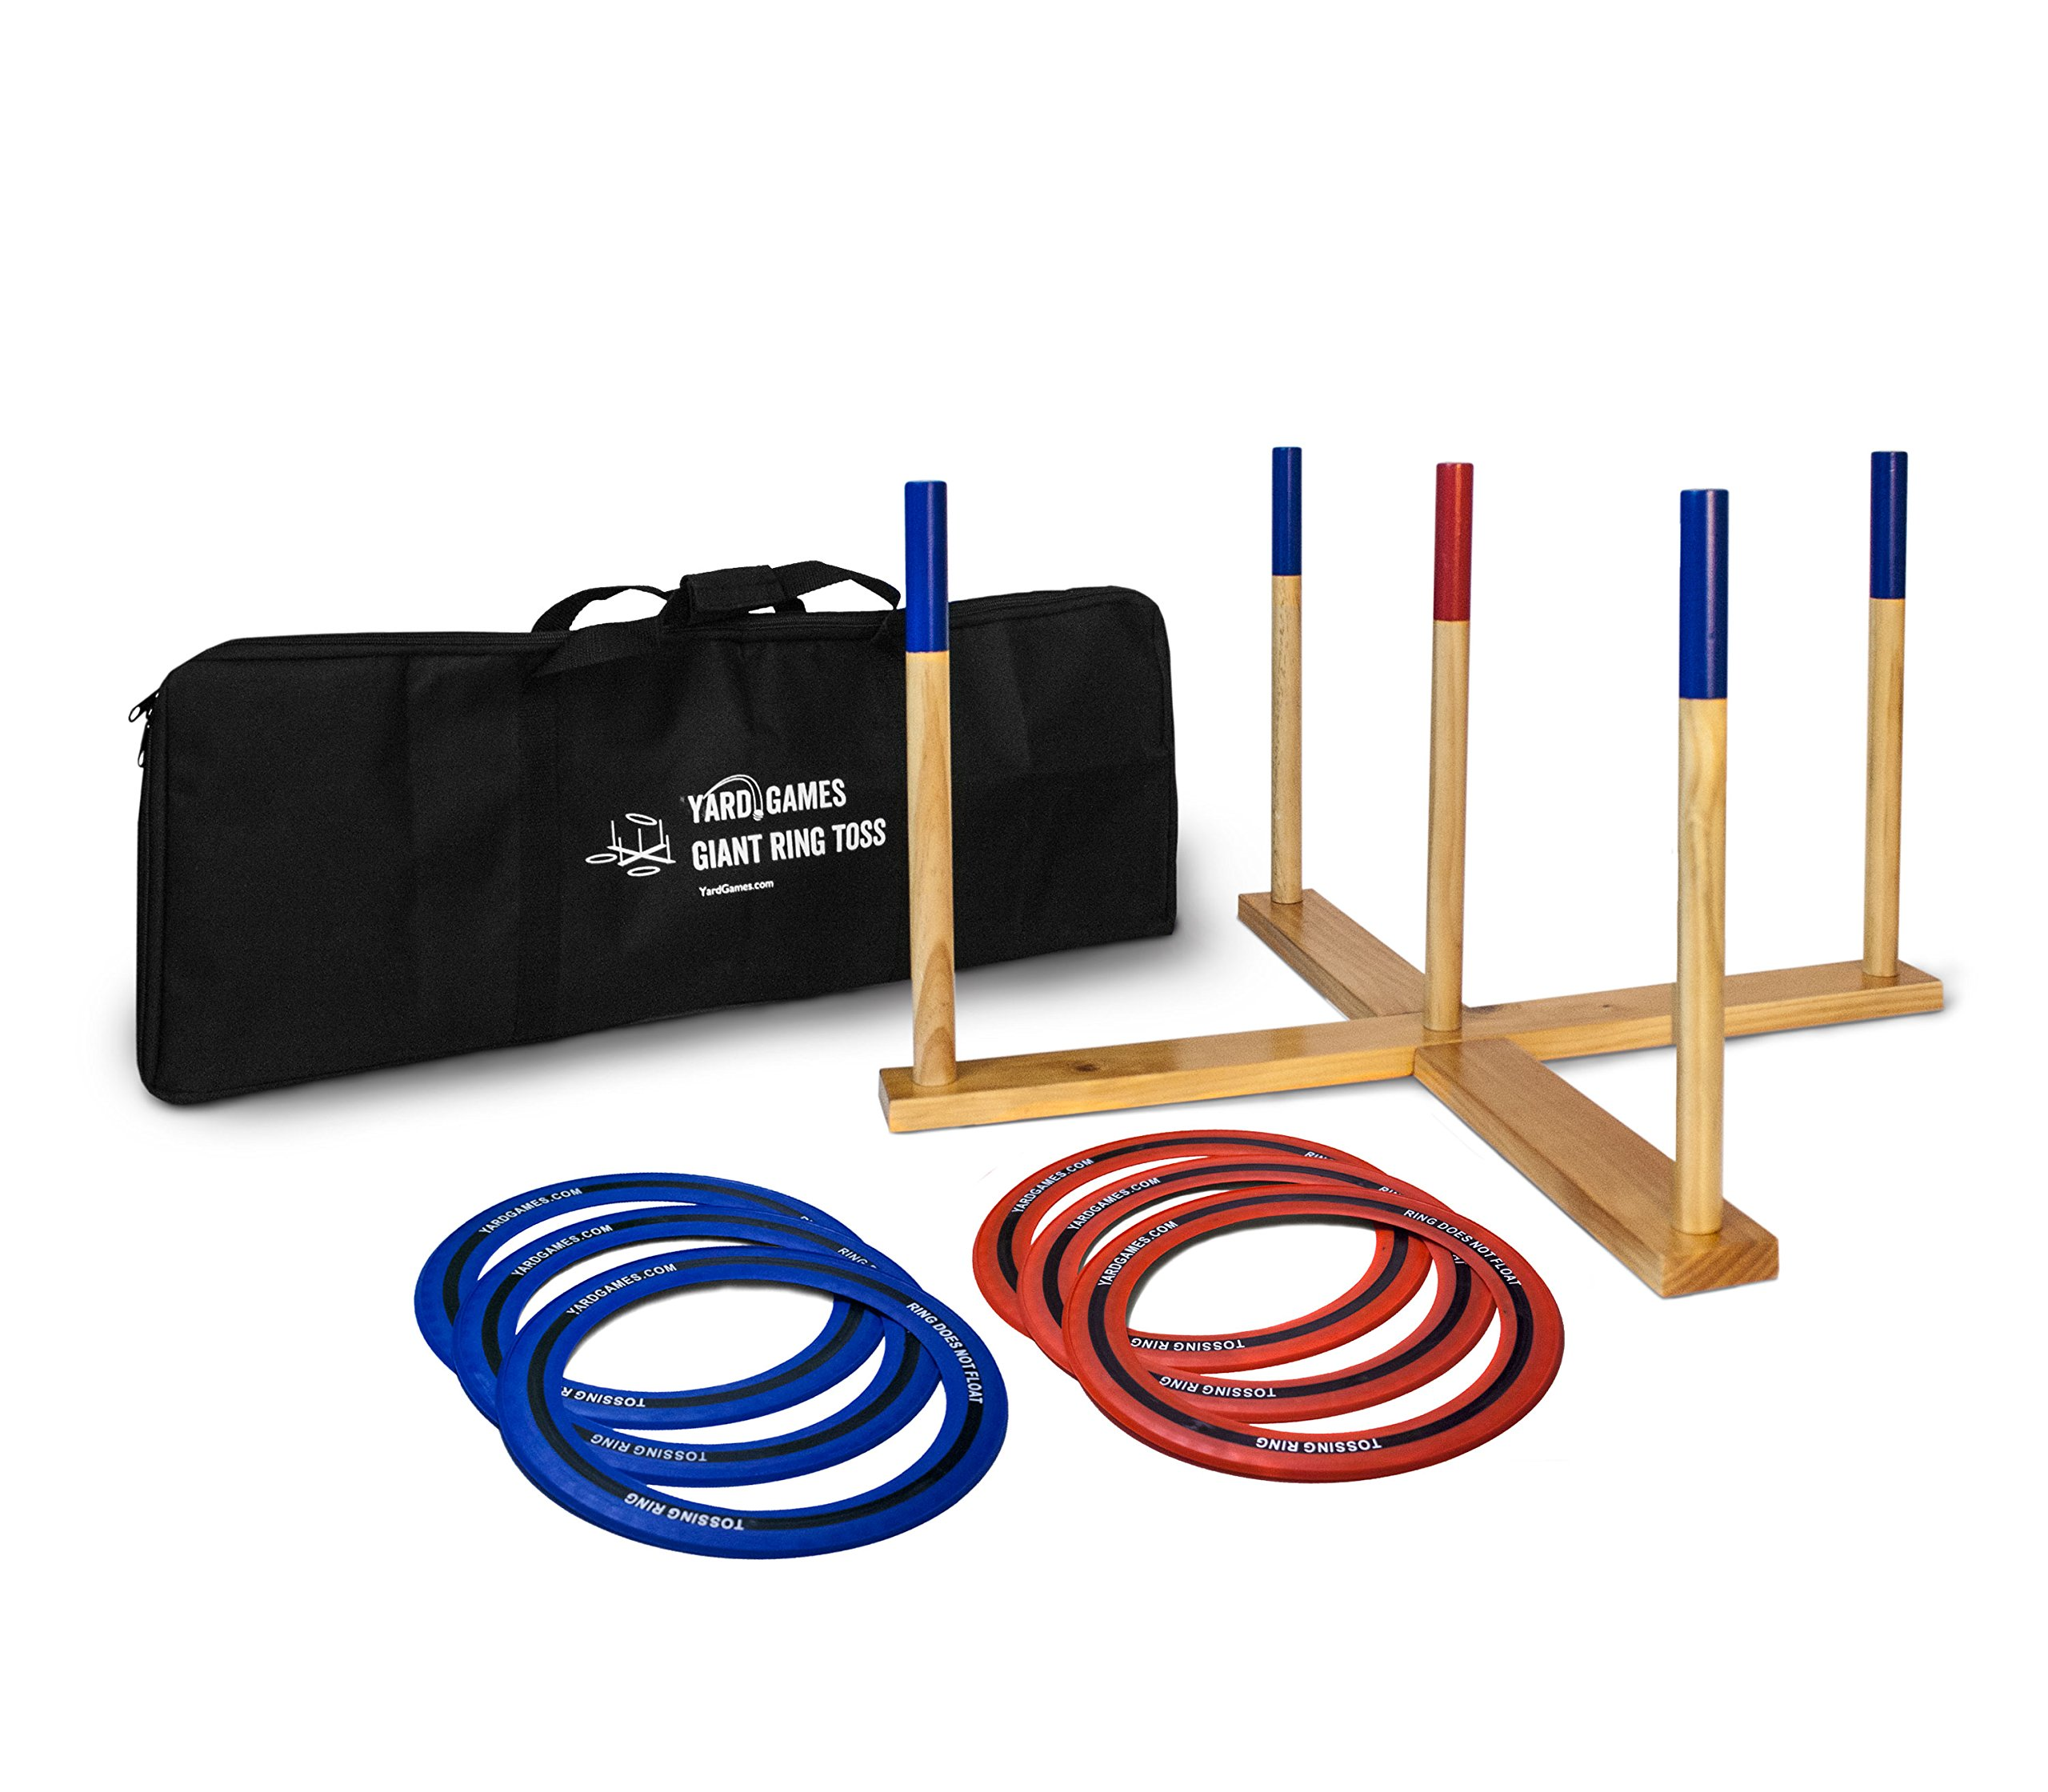 Yard Games Giant Ring Toss with Soft-Touch Tossing Rings and Finished Wood Target by Yard Games